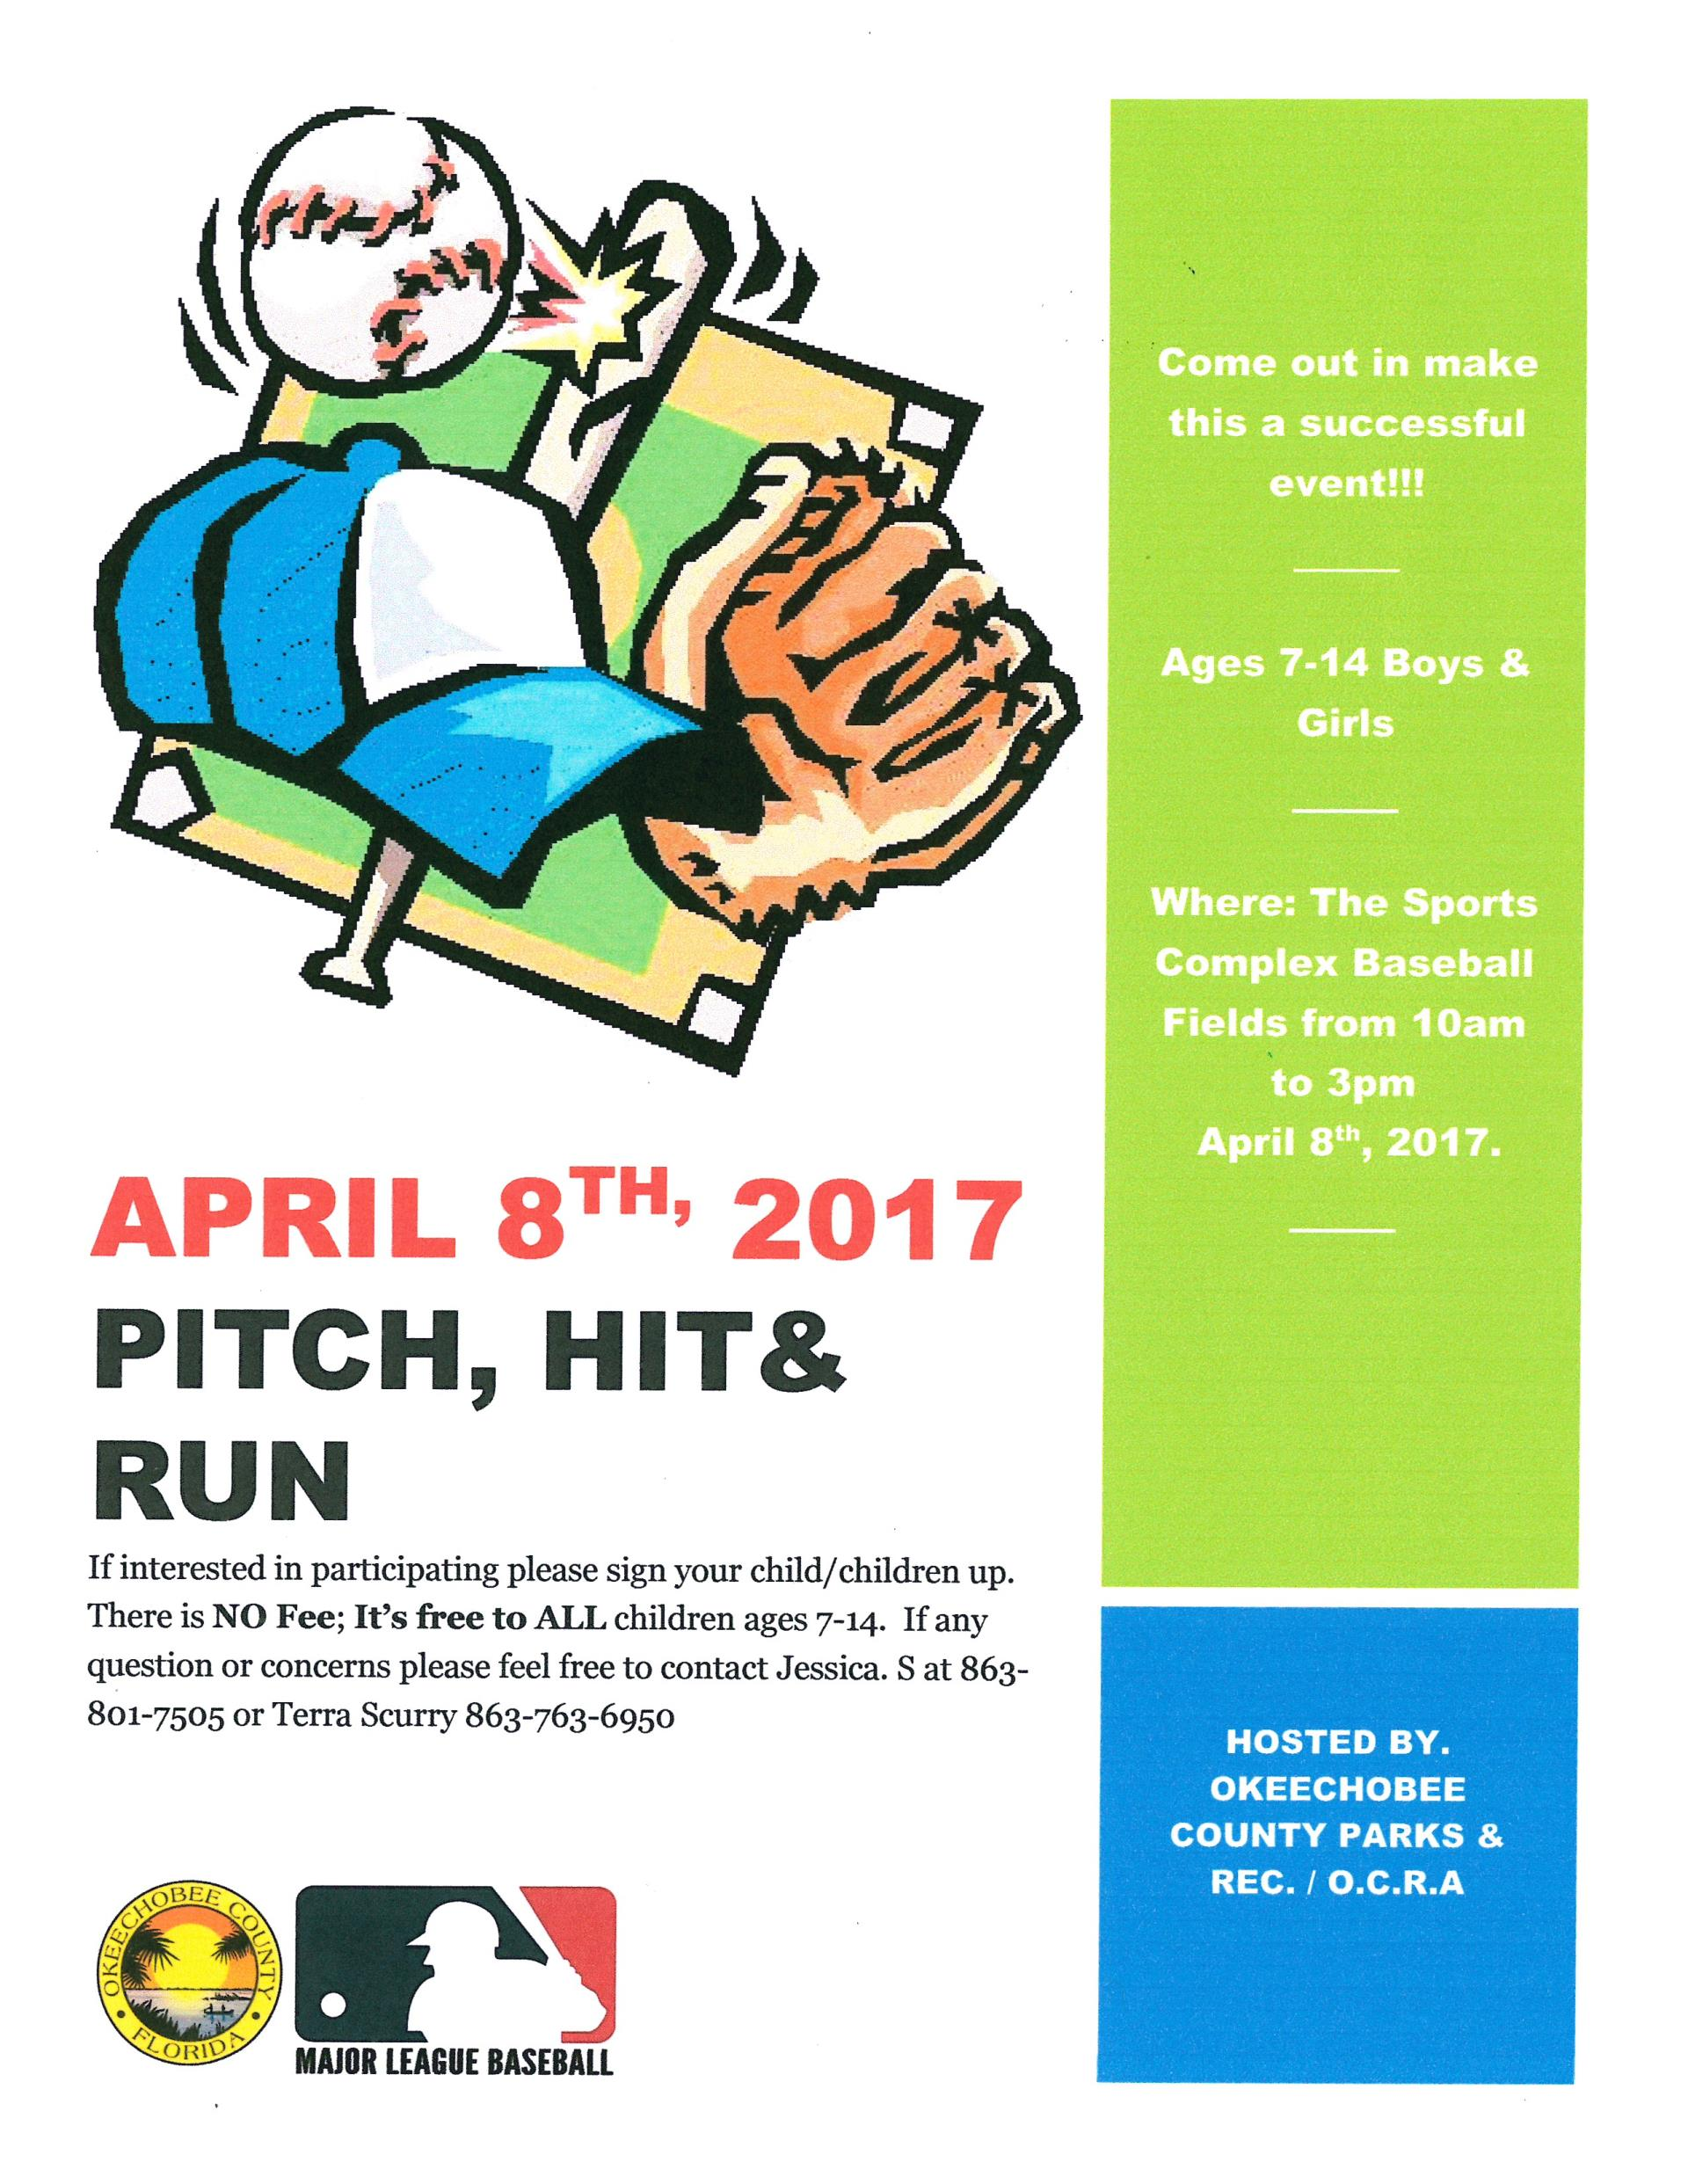 Pitch, Hit & Run 2017